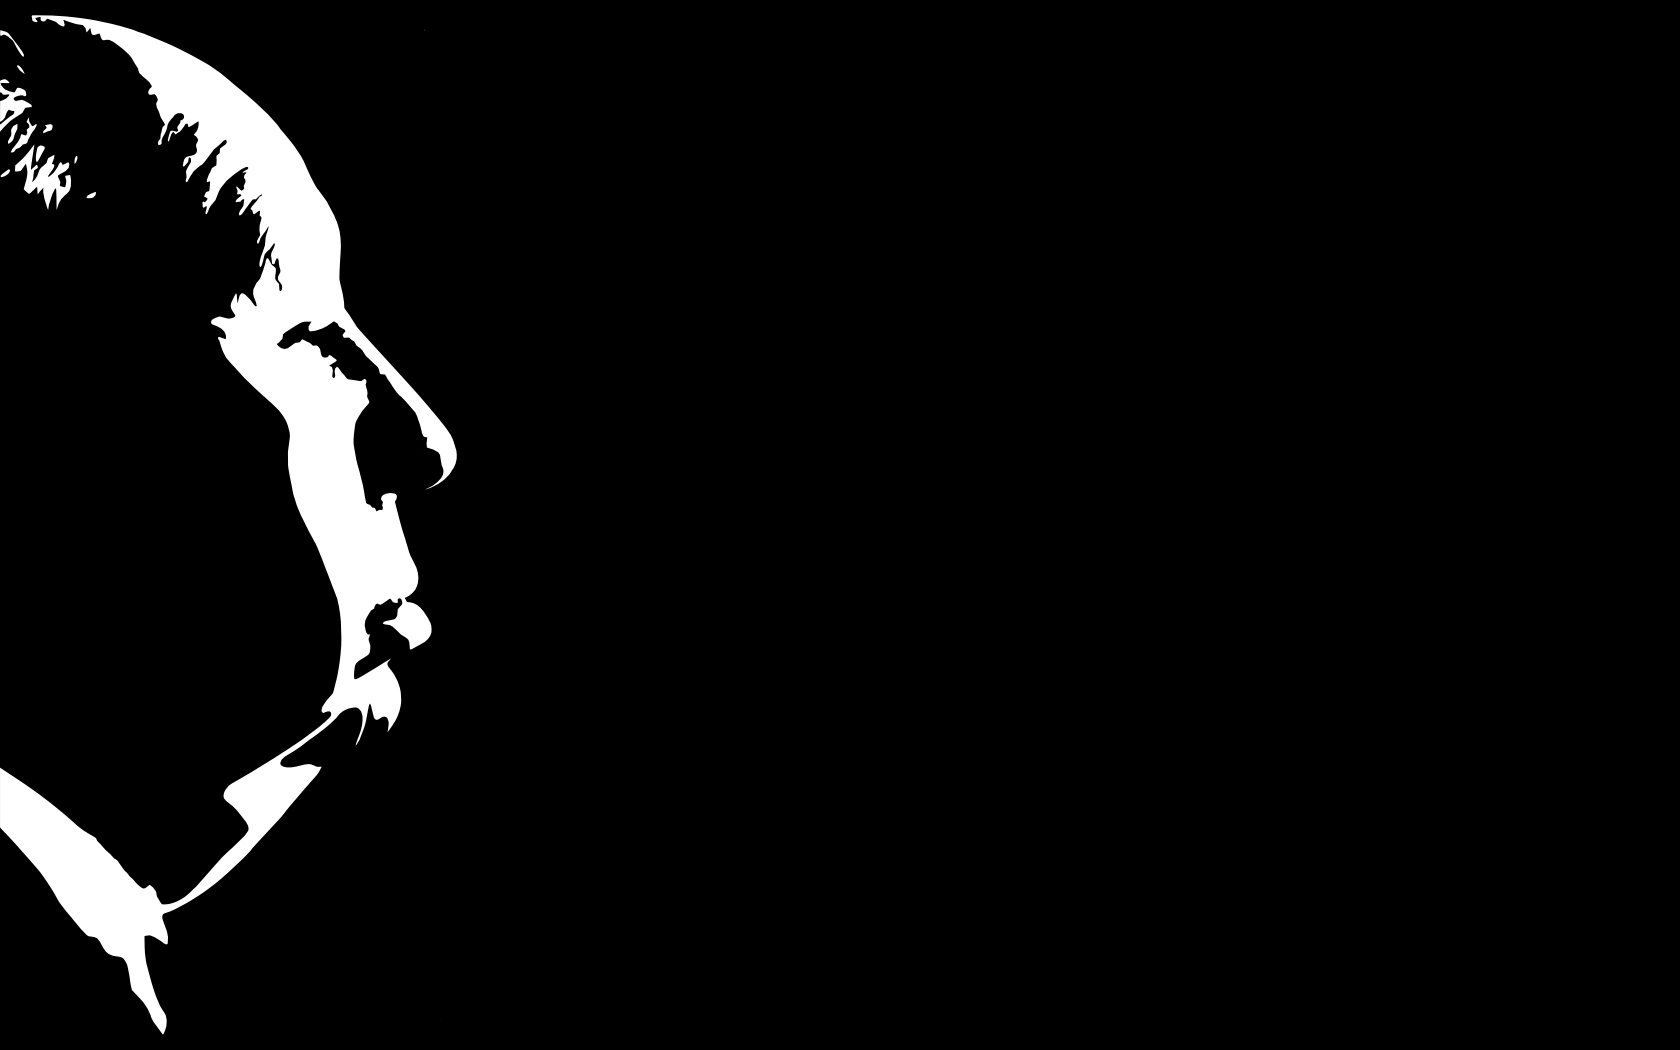 1680x1050 - Alfred Hitchcock Wallpapers 4